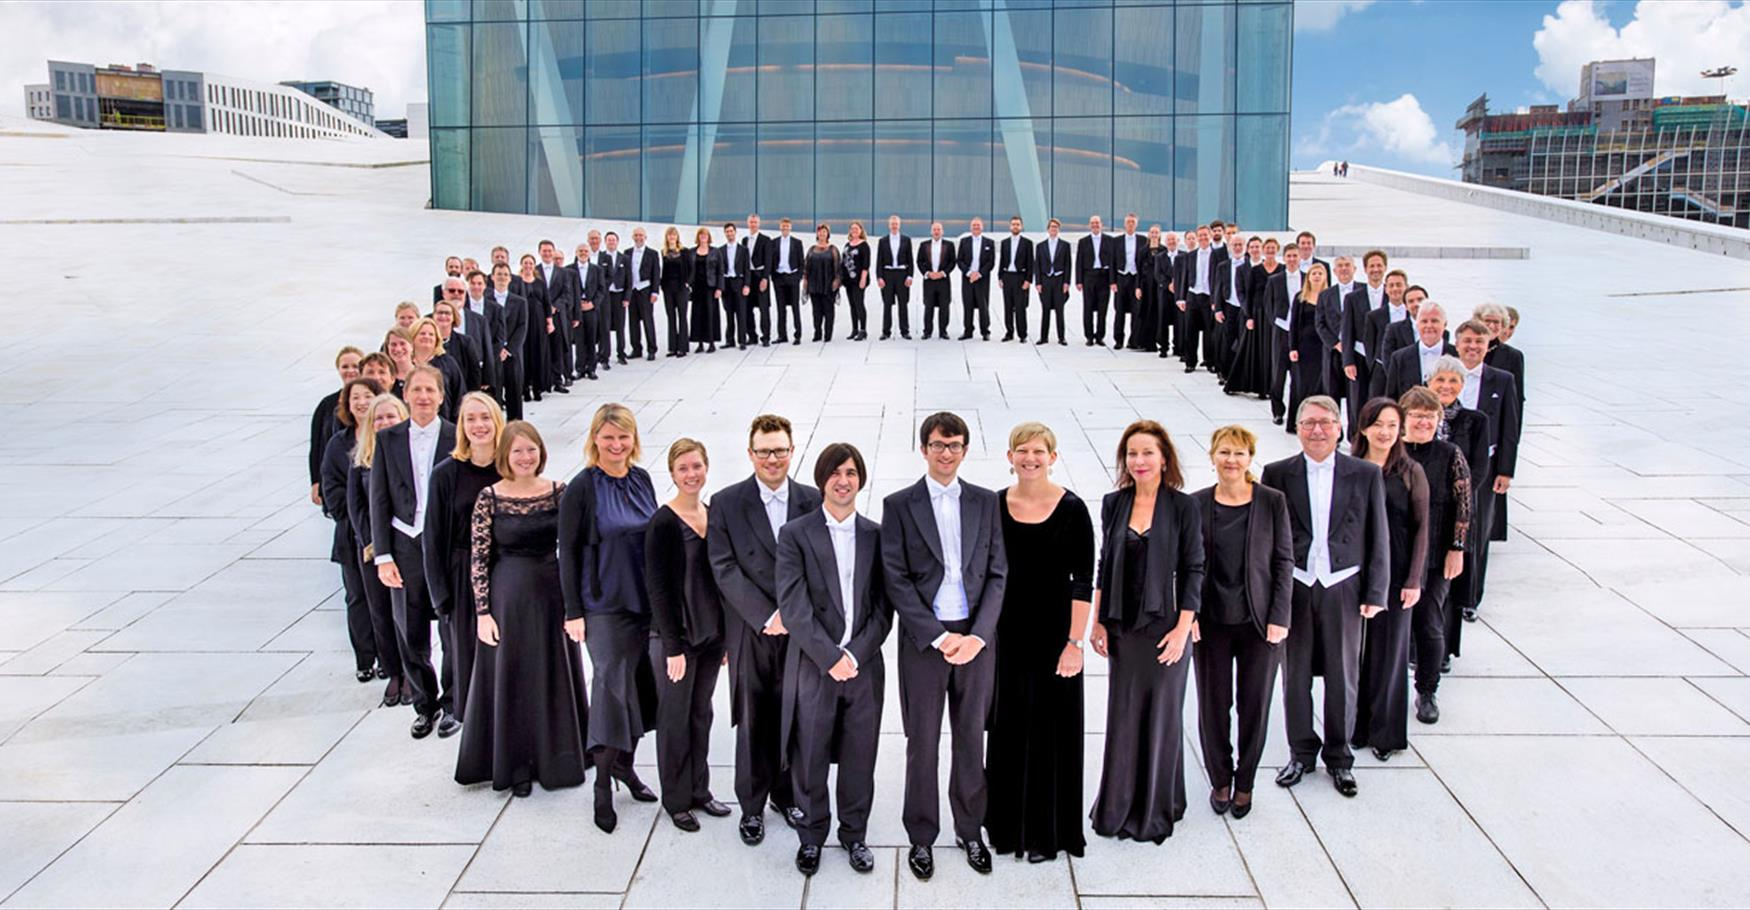 Valdres Sommersymfoni is a classical music festival that takes place in June. 2019 the Norwegian Opera Orchestra will guest Valdres Sommersymfoni.